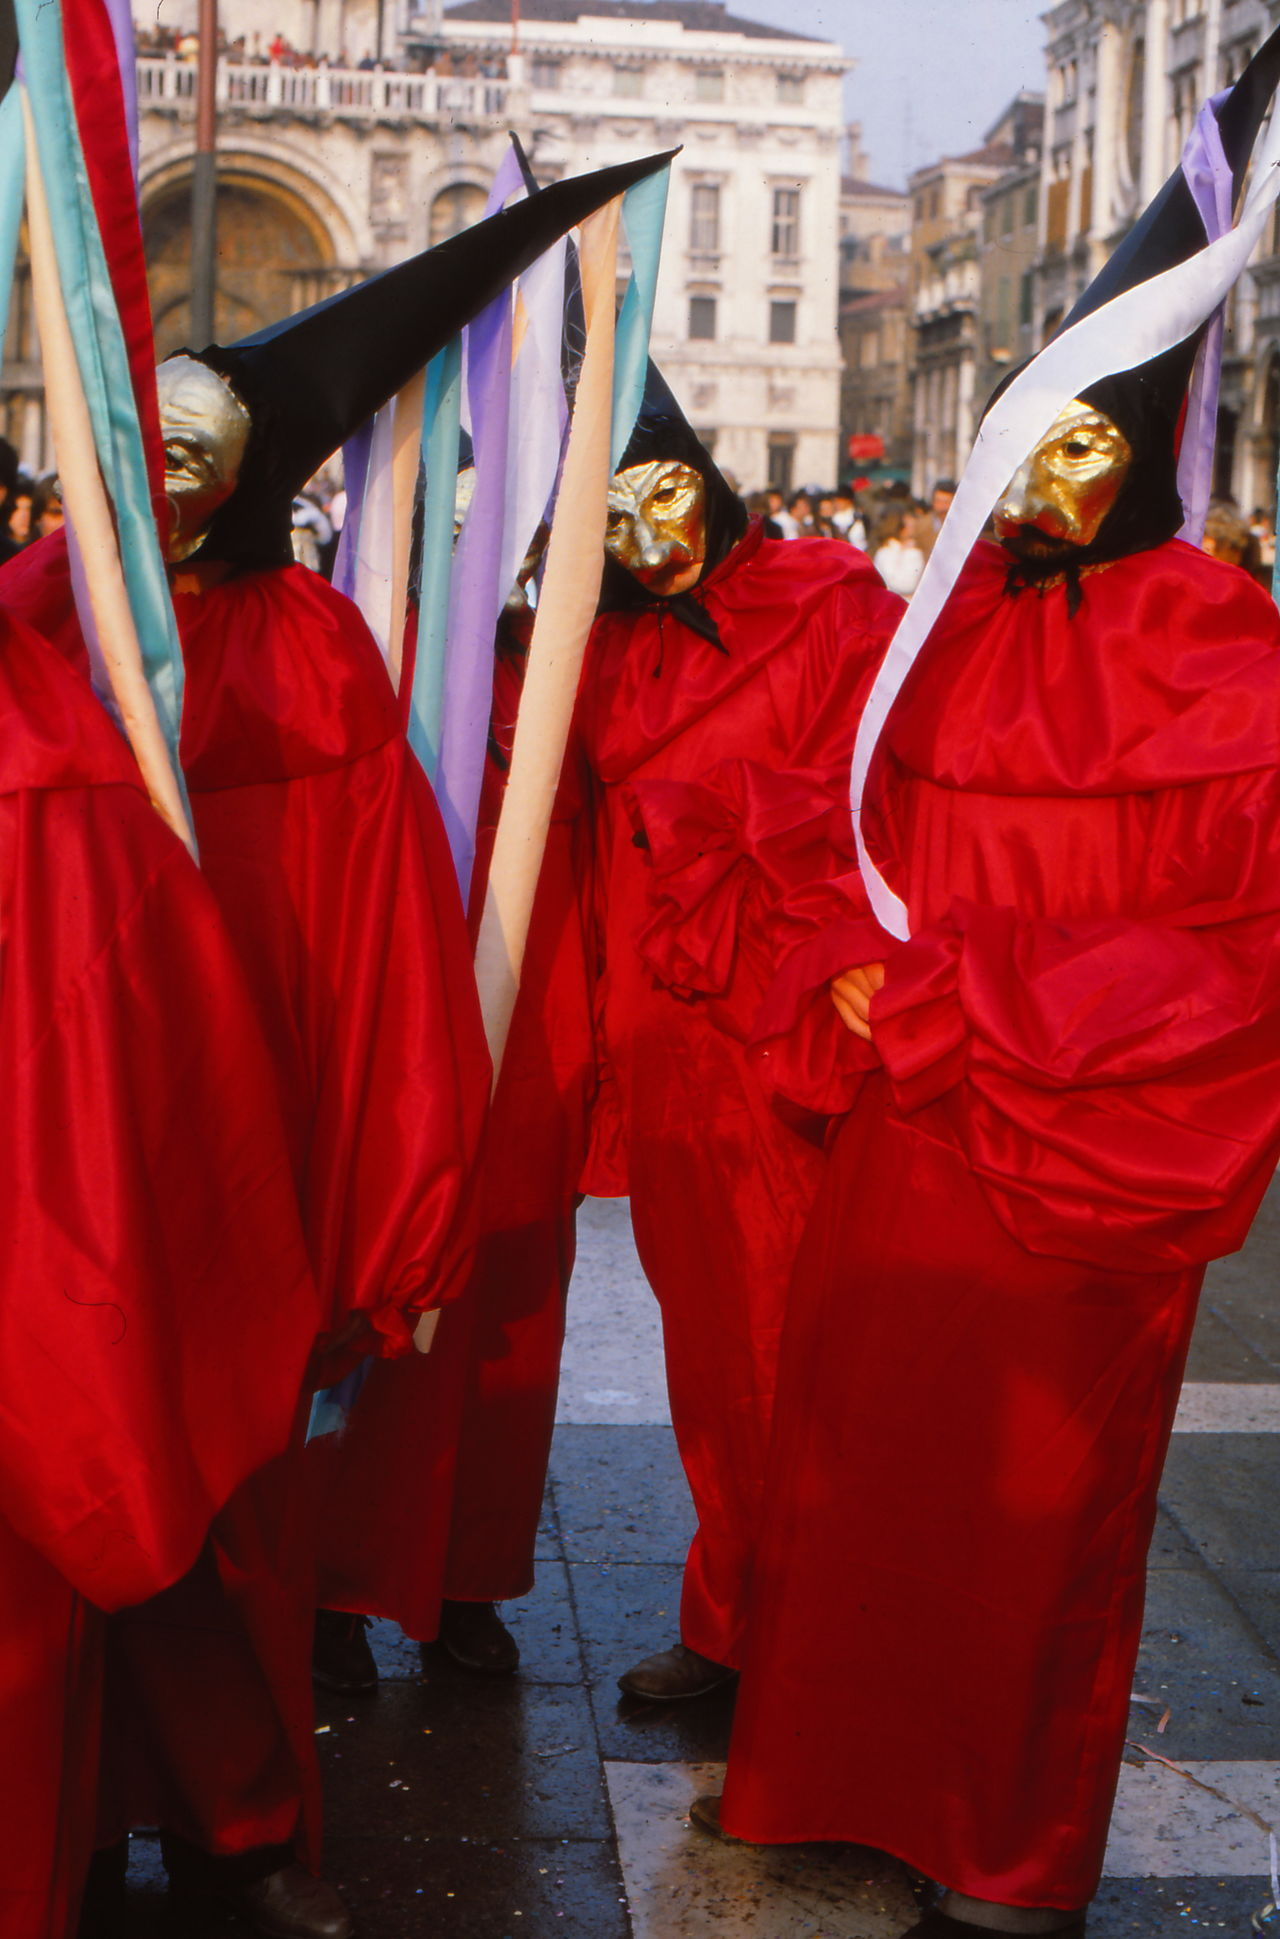 Carnival Colors Of Carnival Full Frame Group Of Masks Lifestyles Red Color Standing Venice Carnival Venice, Italy